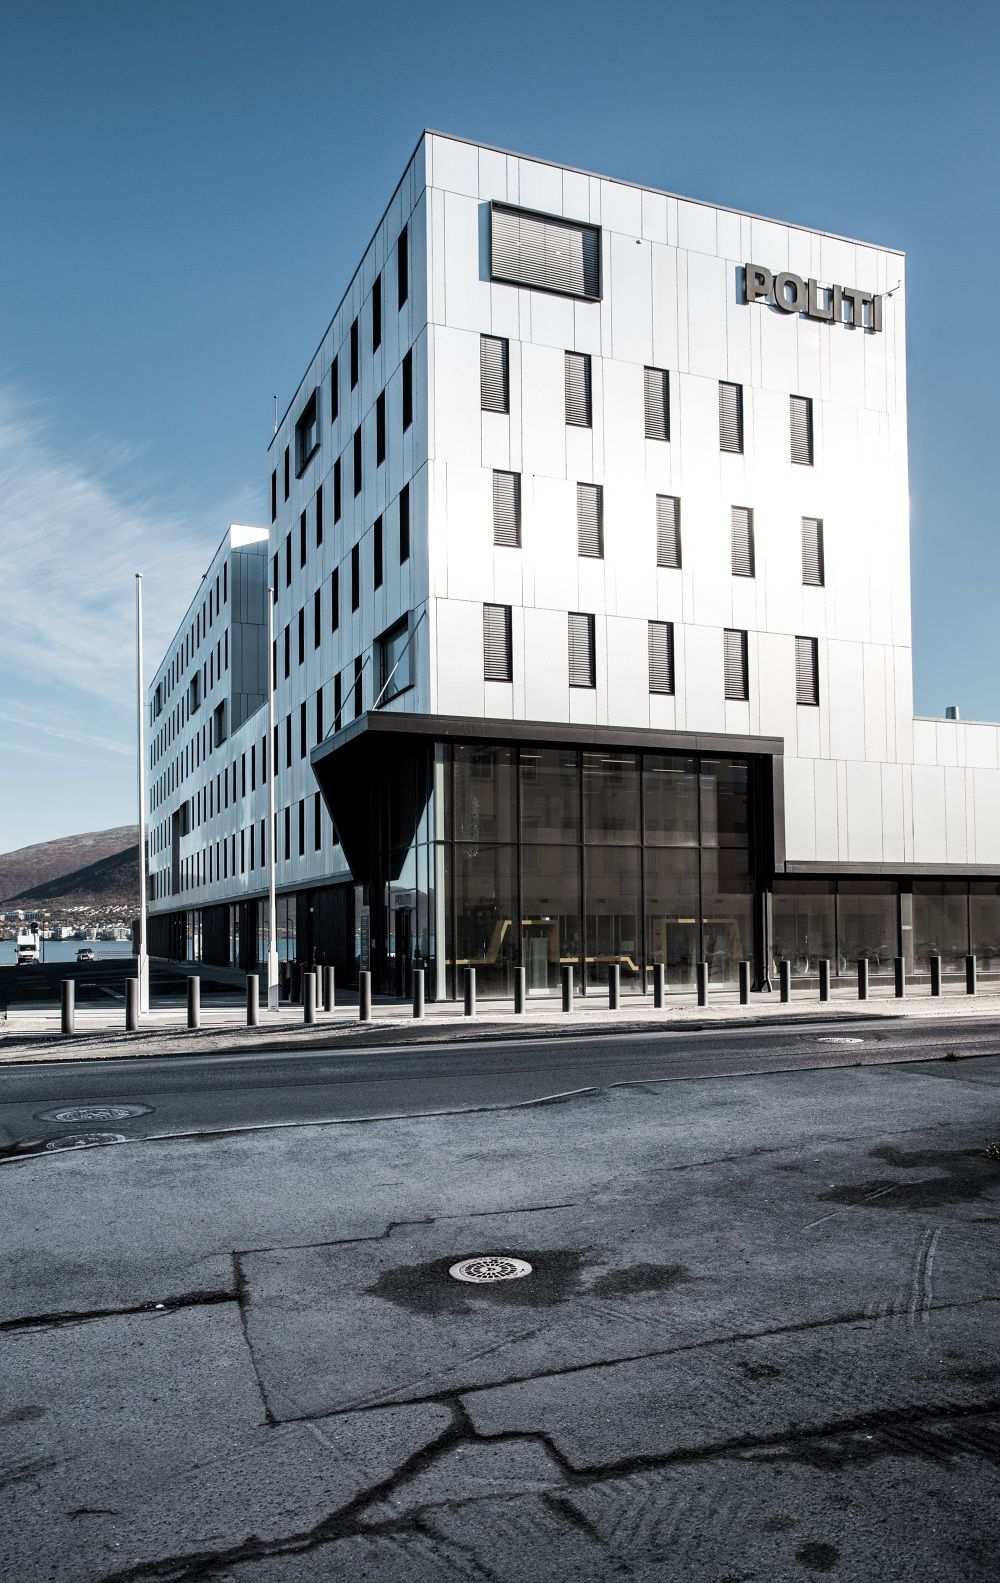 1st Prize In Turnkey Competition In 2011, In Cooperation With The  Construction Company ECONOR AS. The Facility Includes Joint Operational  Unit, PST, ...